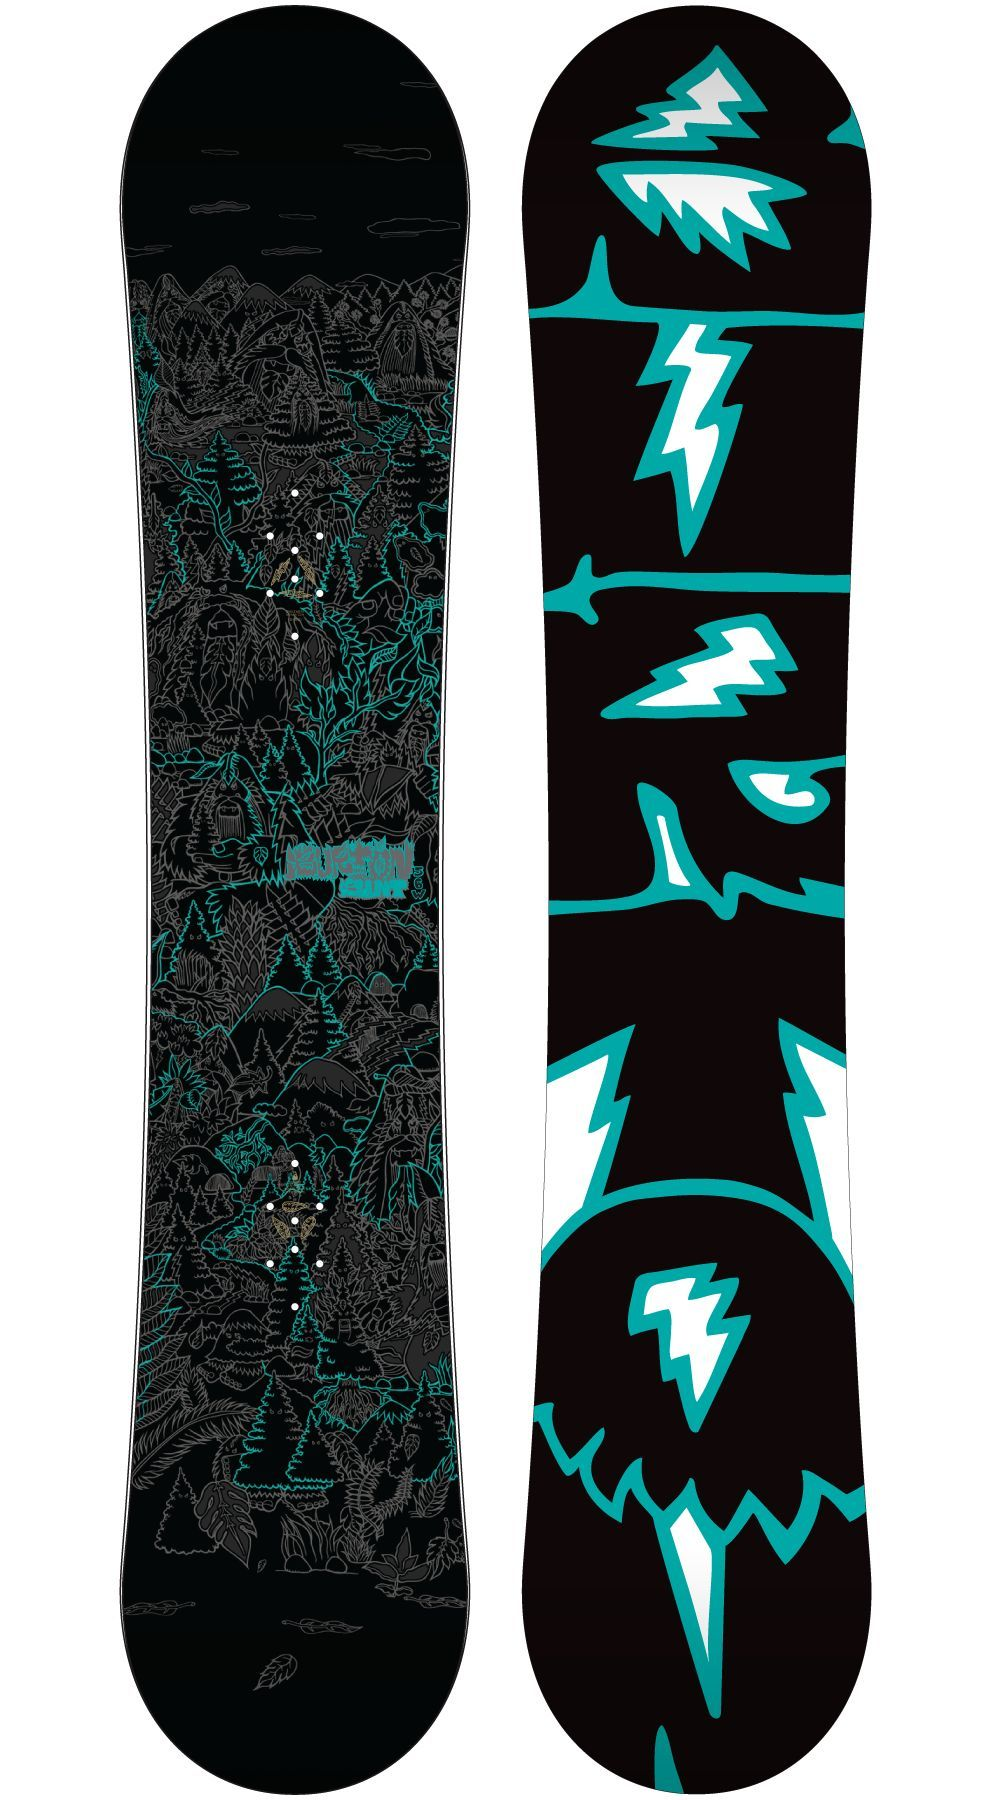 Lifted Lab Bigfoot Meets Mike Giant Burton snowboards